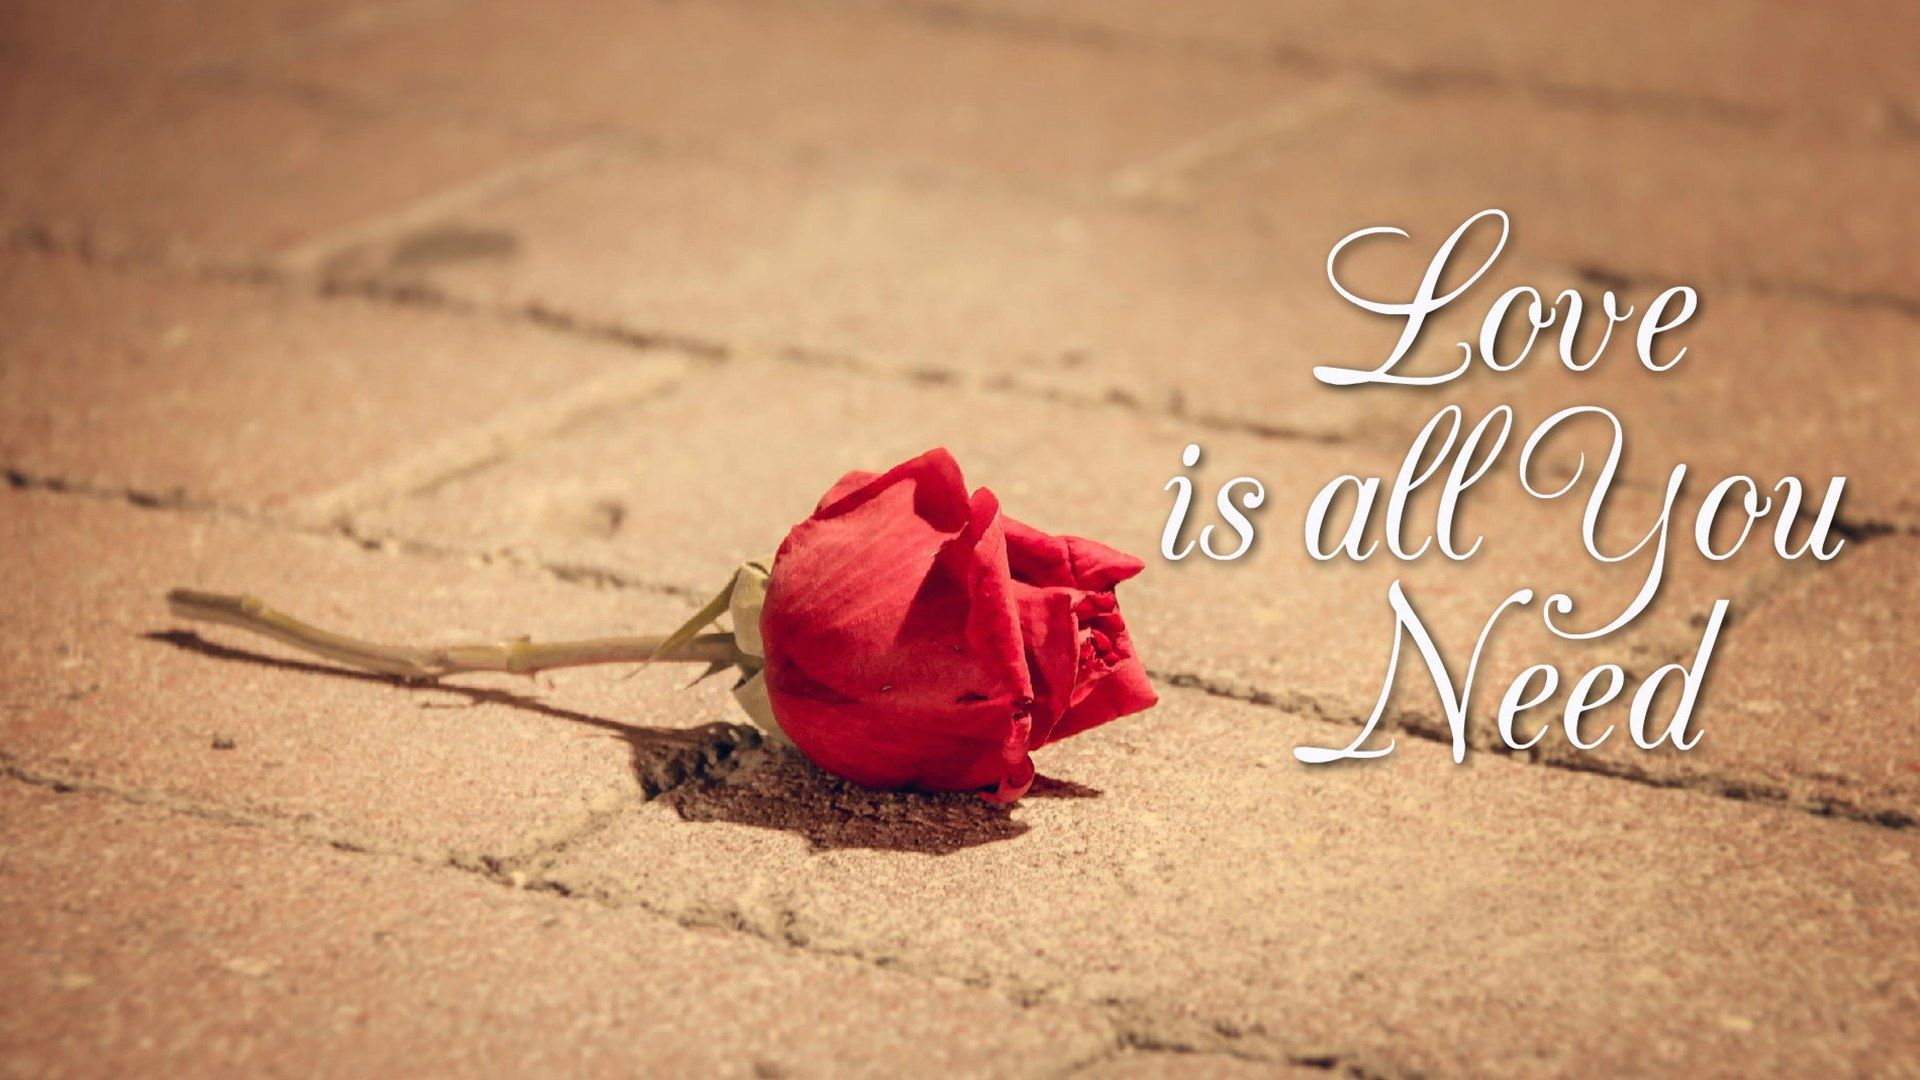 Google Image Result For Http Www Baltana Com Files Wallpapers 2 Love Is All You Need Quotes Hd Wallpaper 05793 Jpg Romantic Messages Love Is All Need Quotes